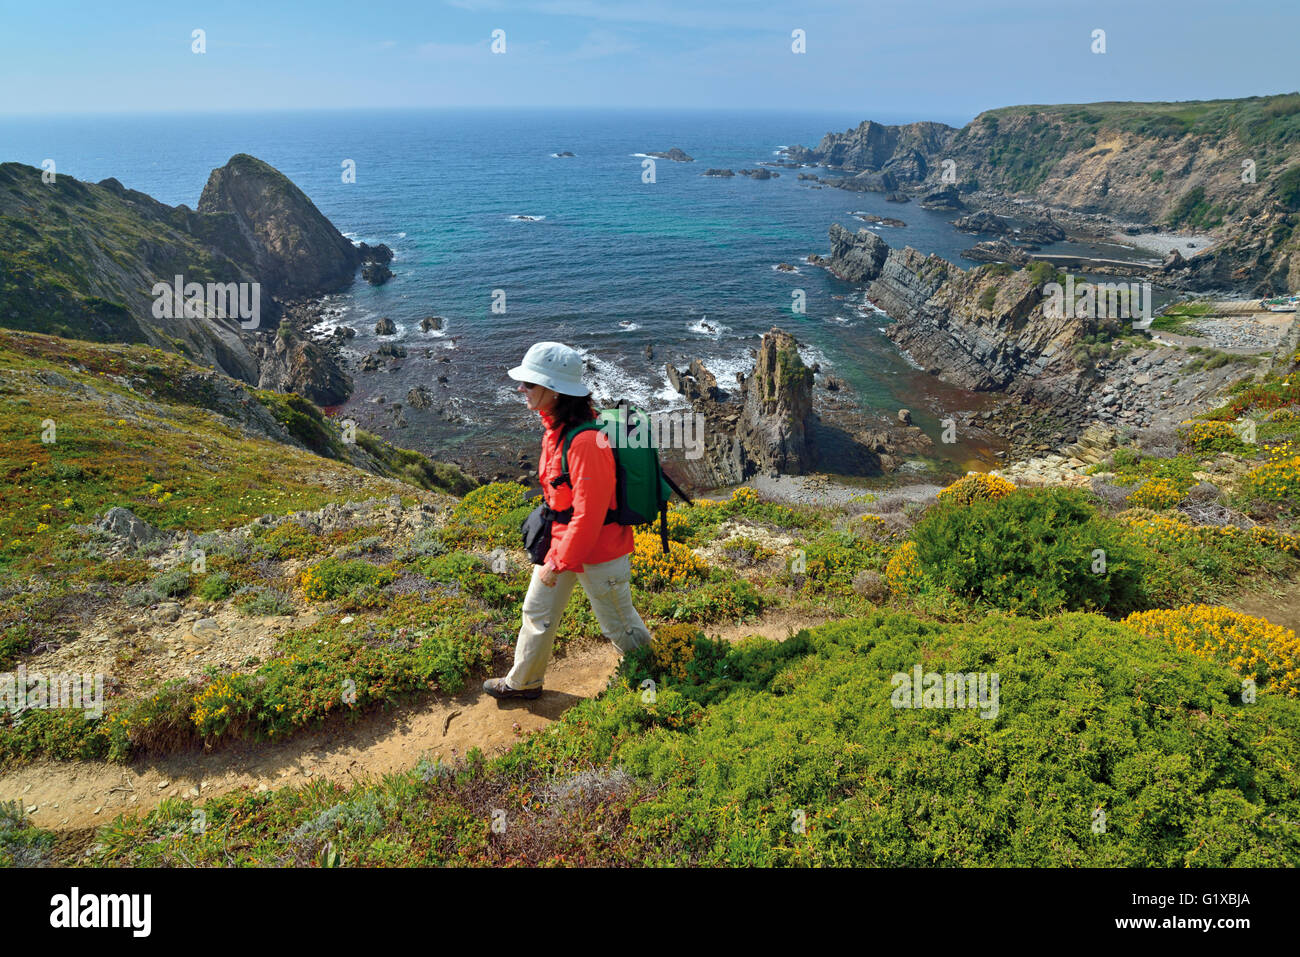 Portugal, Alentejo: Woman walking along coastal track of trekking route Rota Vicentina with ocean view - Stock Image